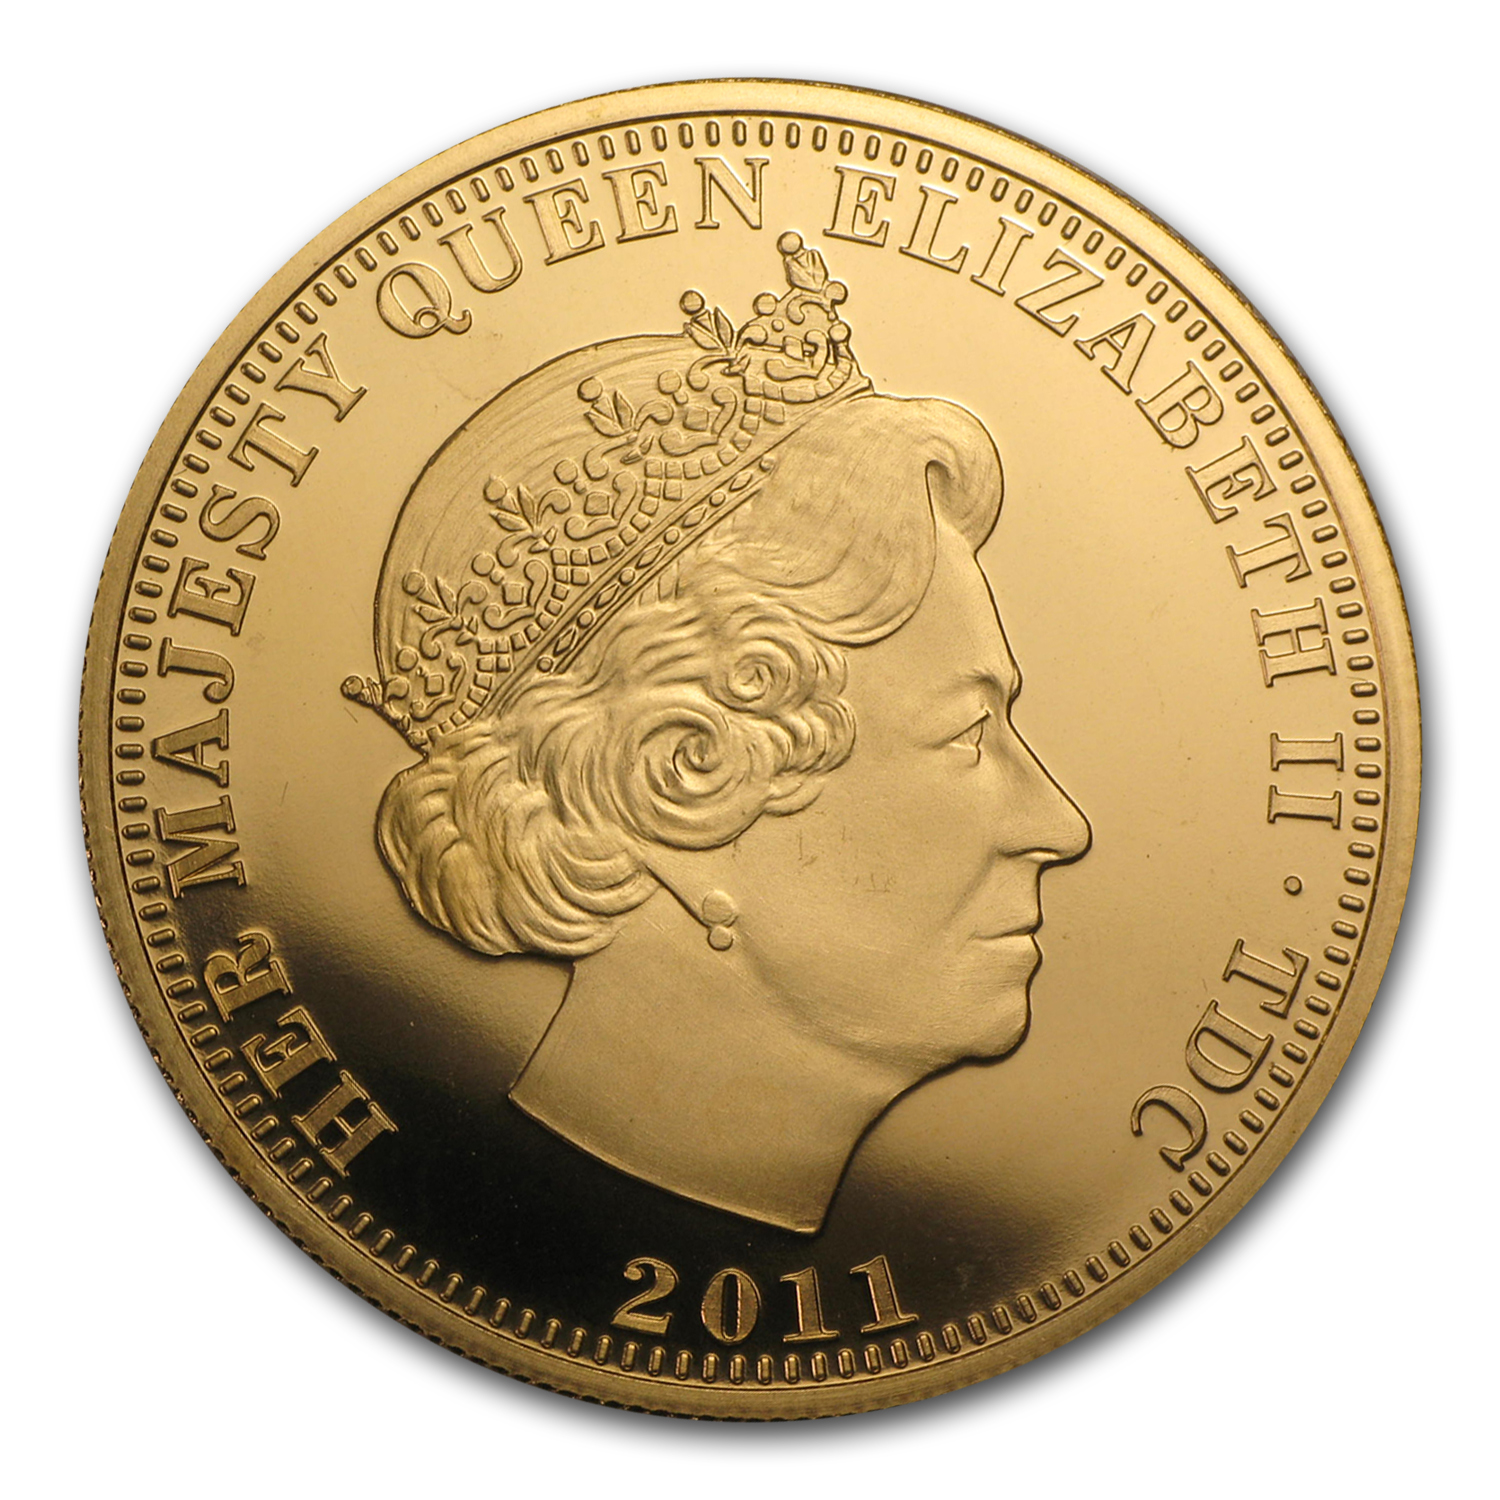 2011 Tristan Da Cunha Gold Double Sovereign William & Catherine